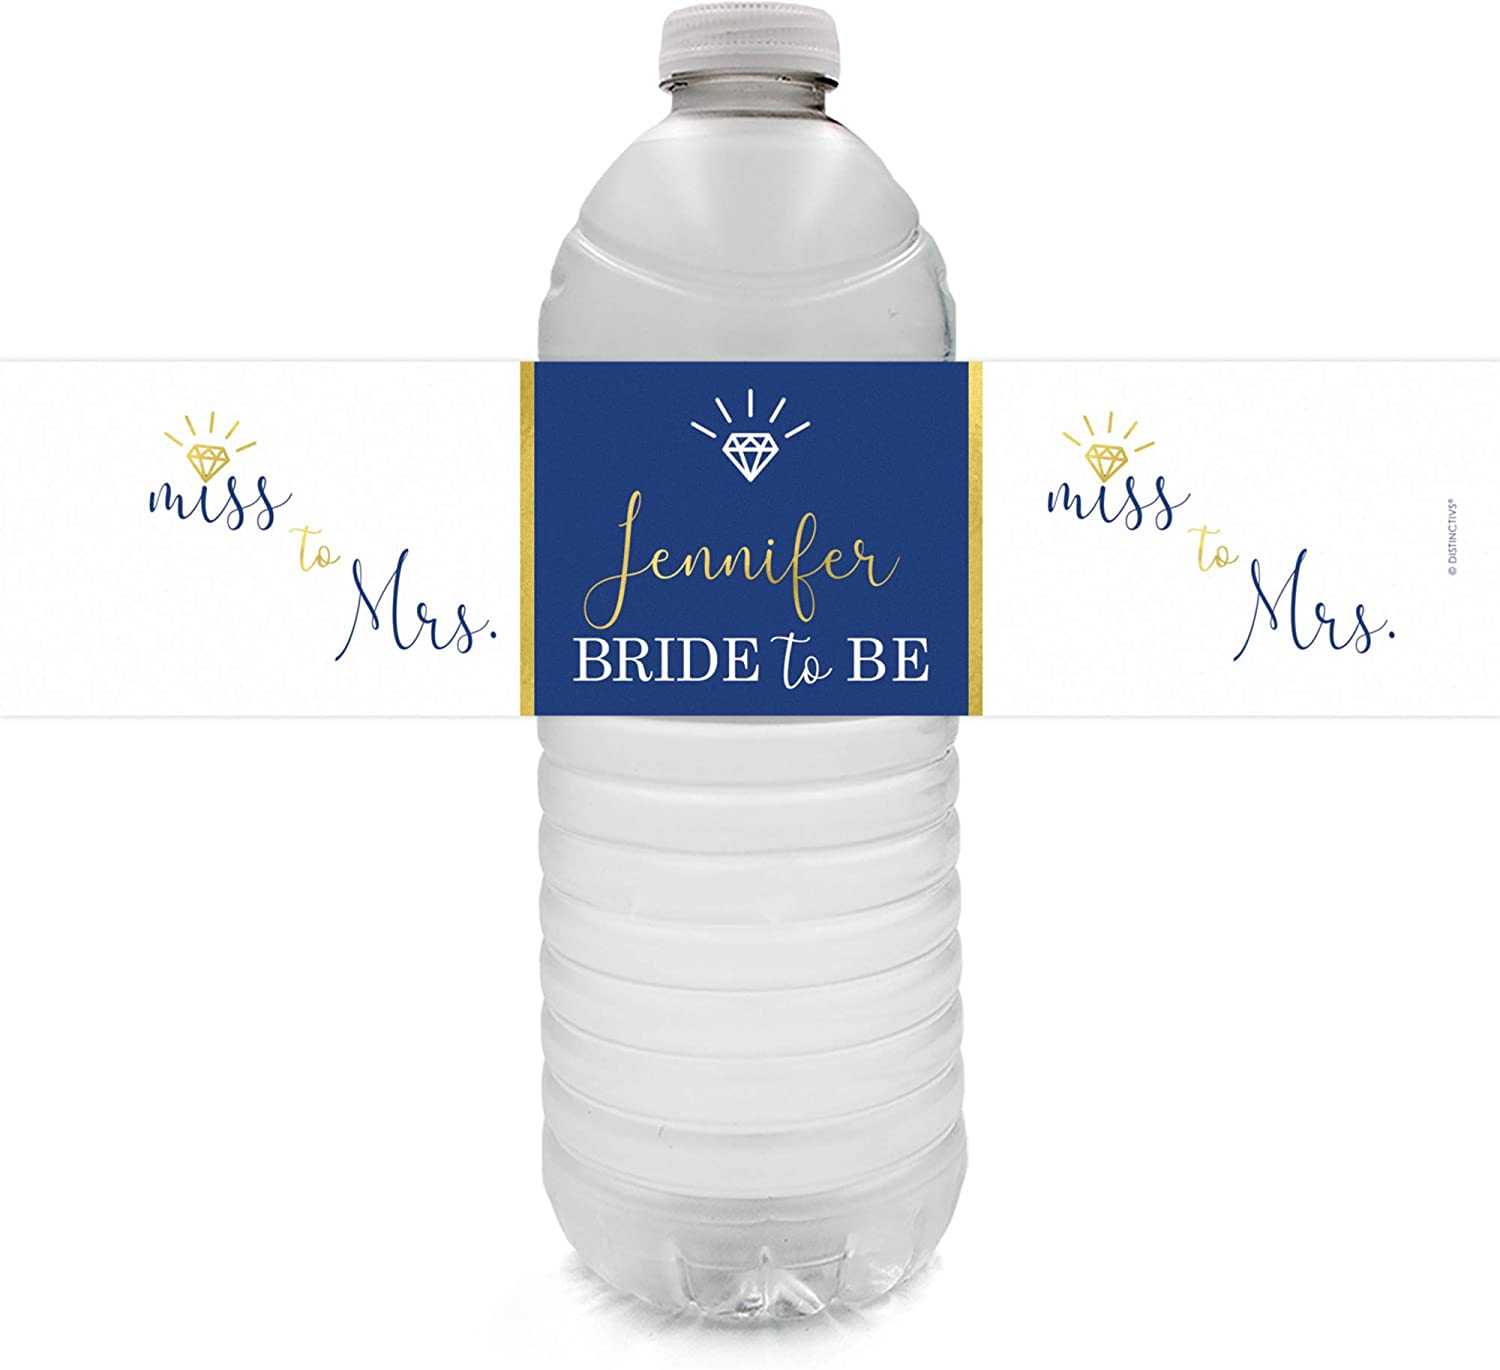 Personalized Bridal Shower Water Bottle Labels - 12 Stickers (Blue)